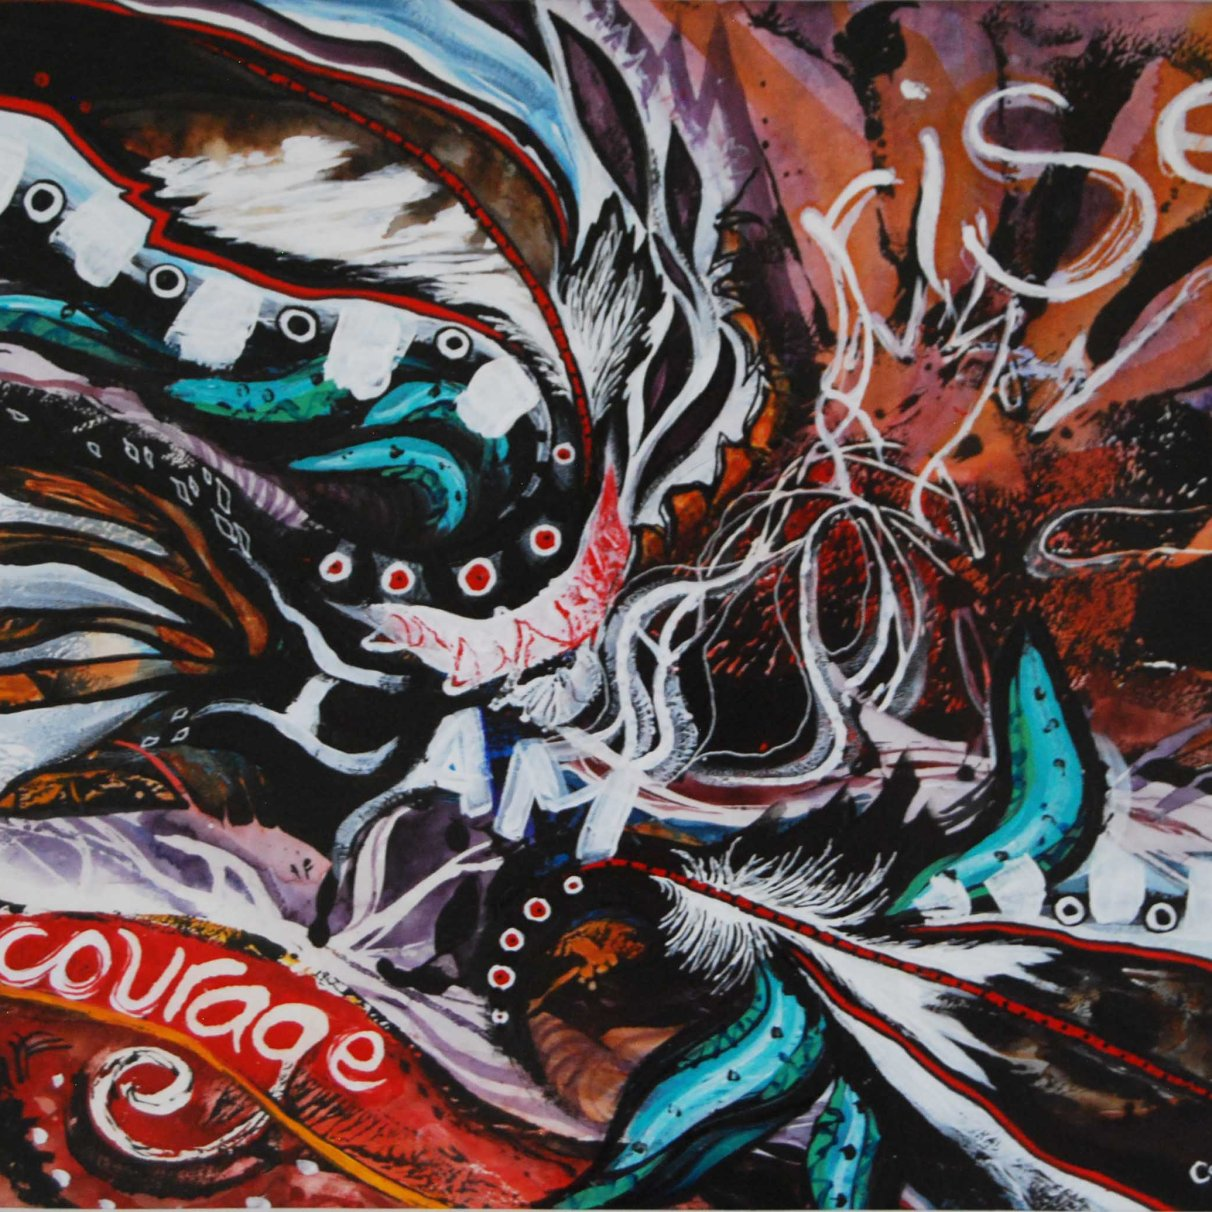 Courage Rises; 2014; mixed media: watercolor, acrylic, ink.